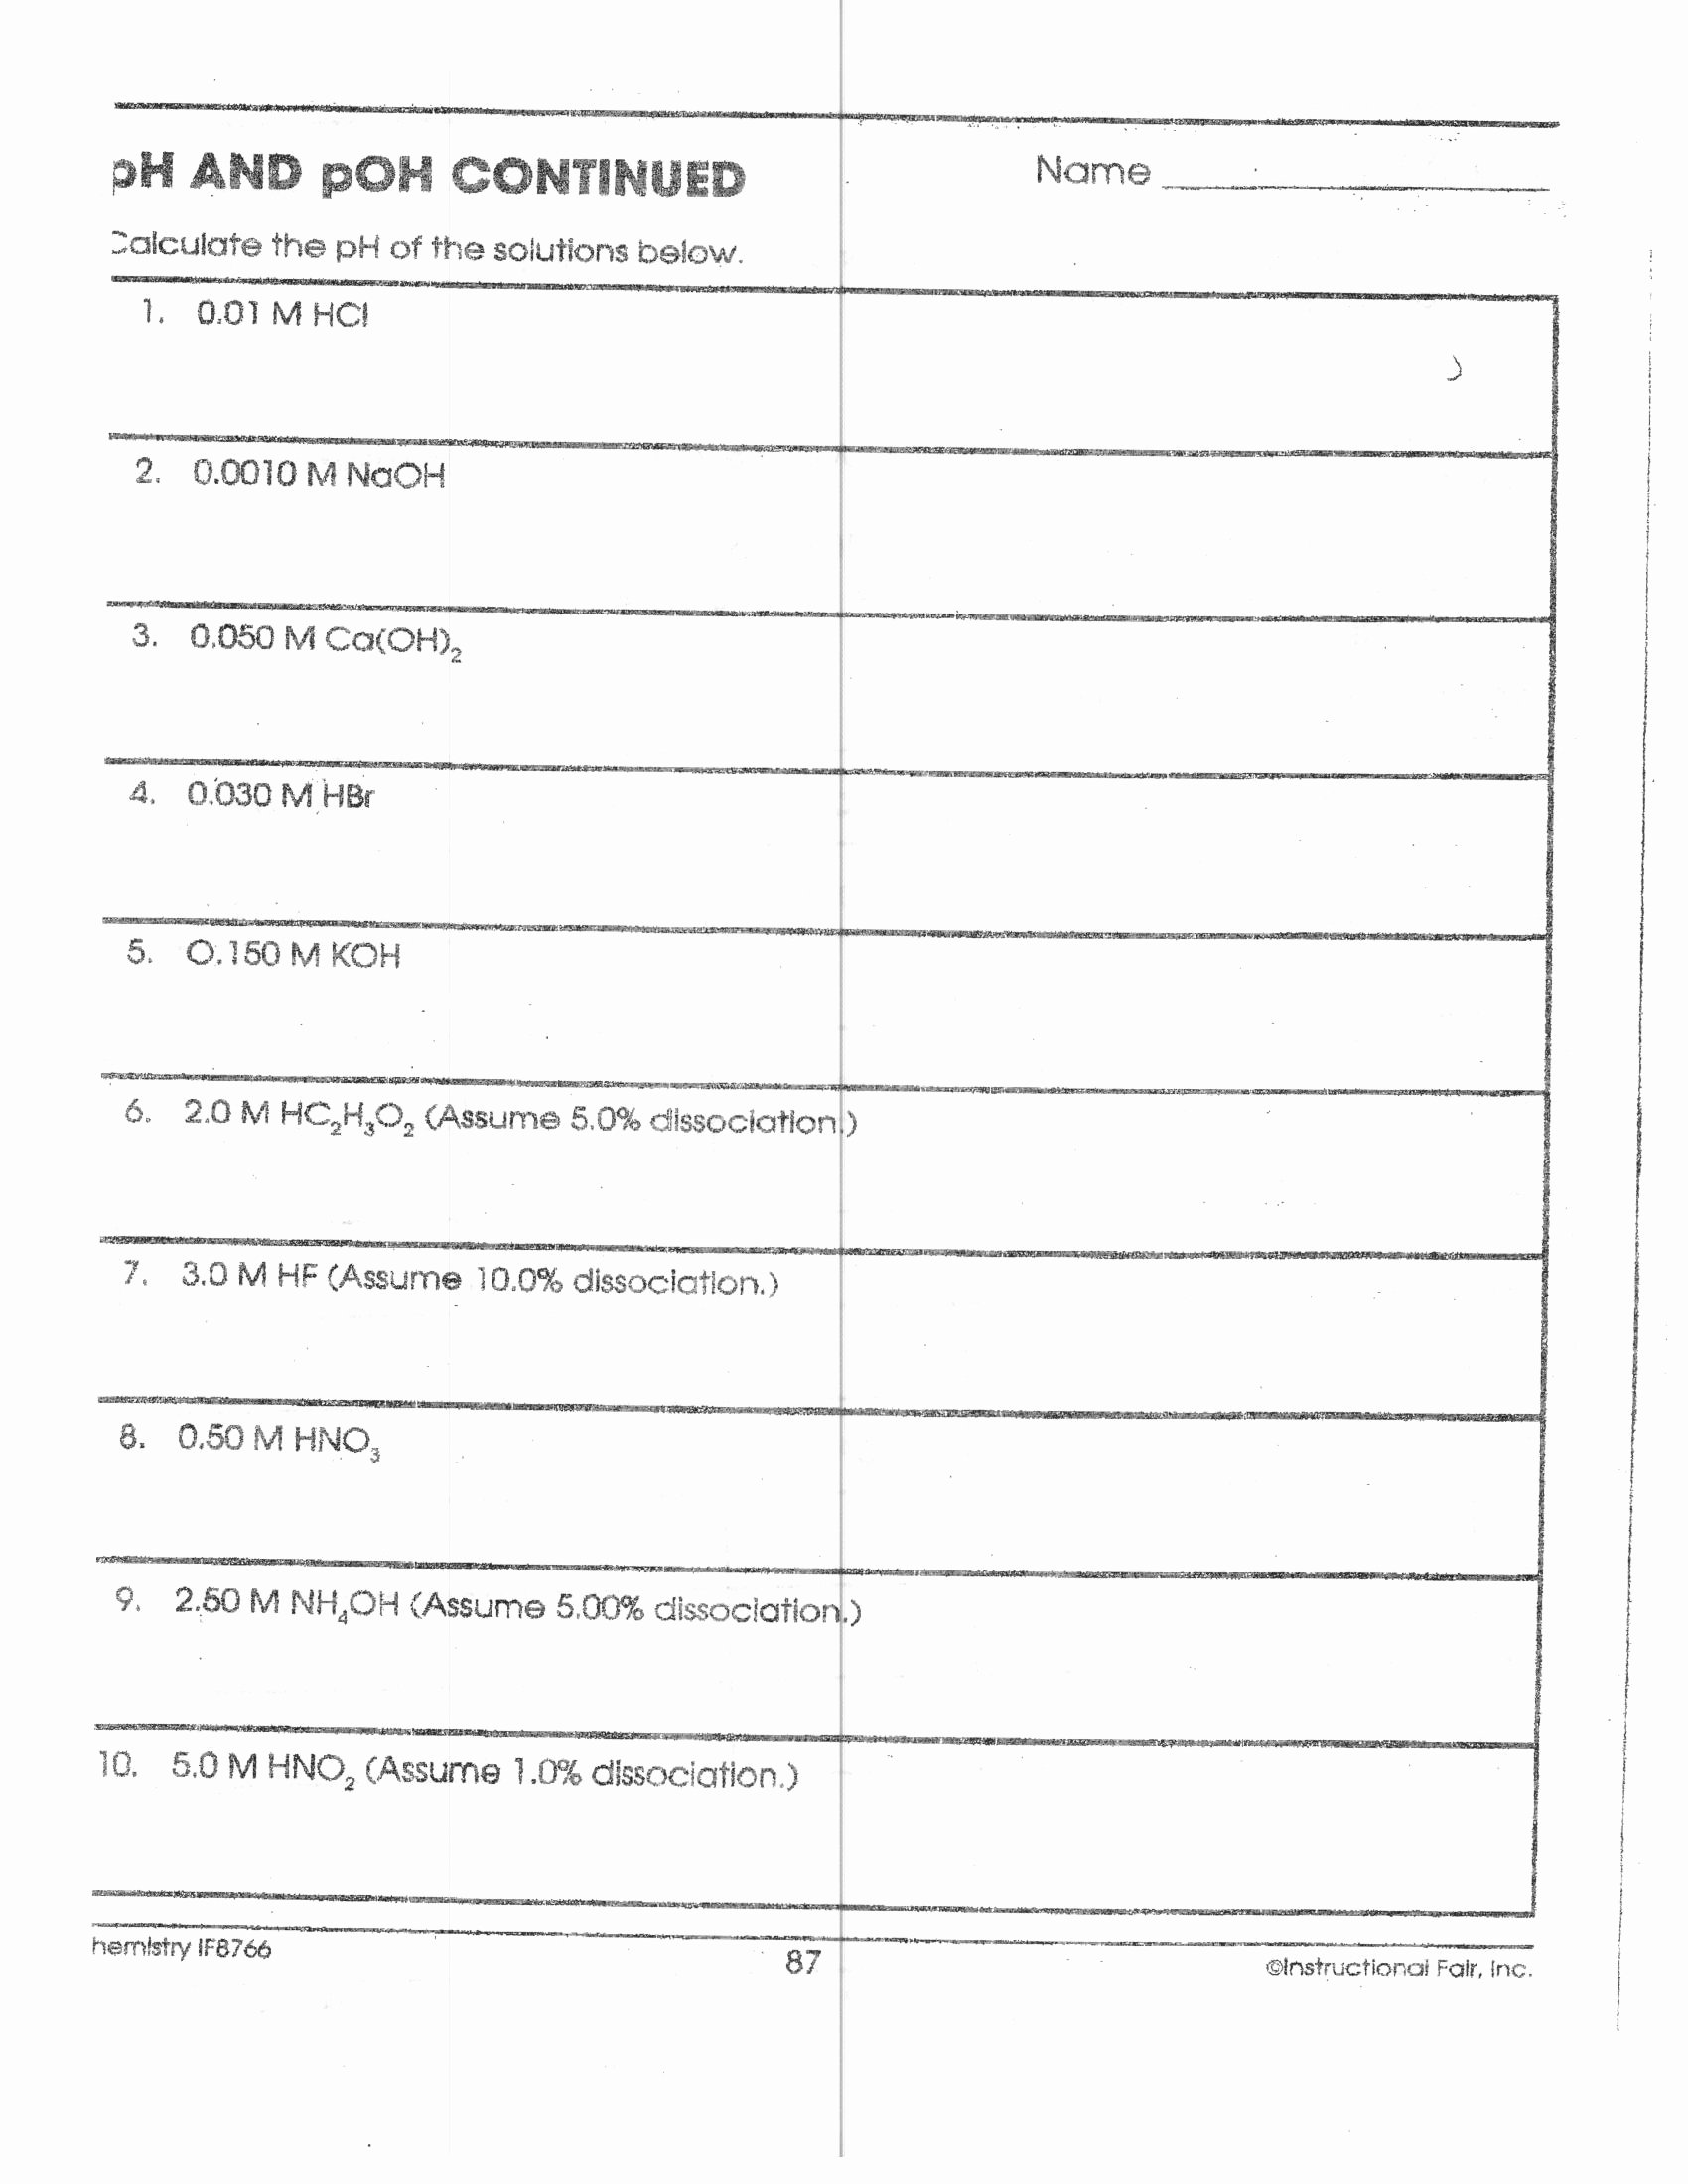 Acid and Bases Worksheet Answers Fresh Worksheet Acids and Bases Worksheets Worksheet Fun